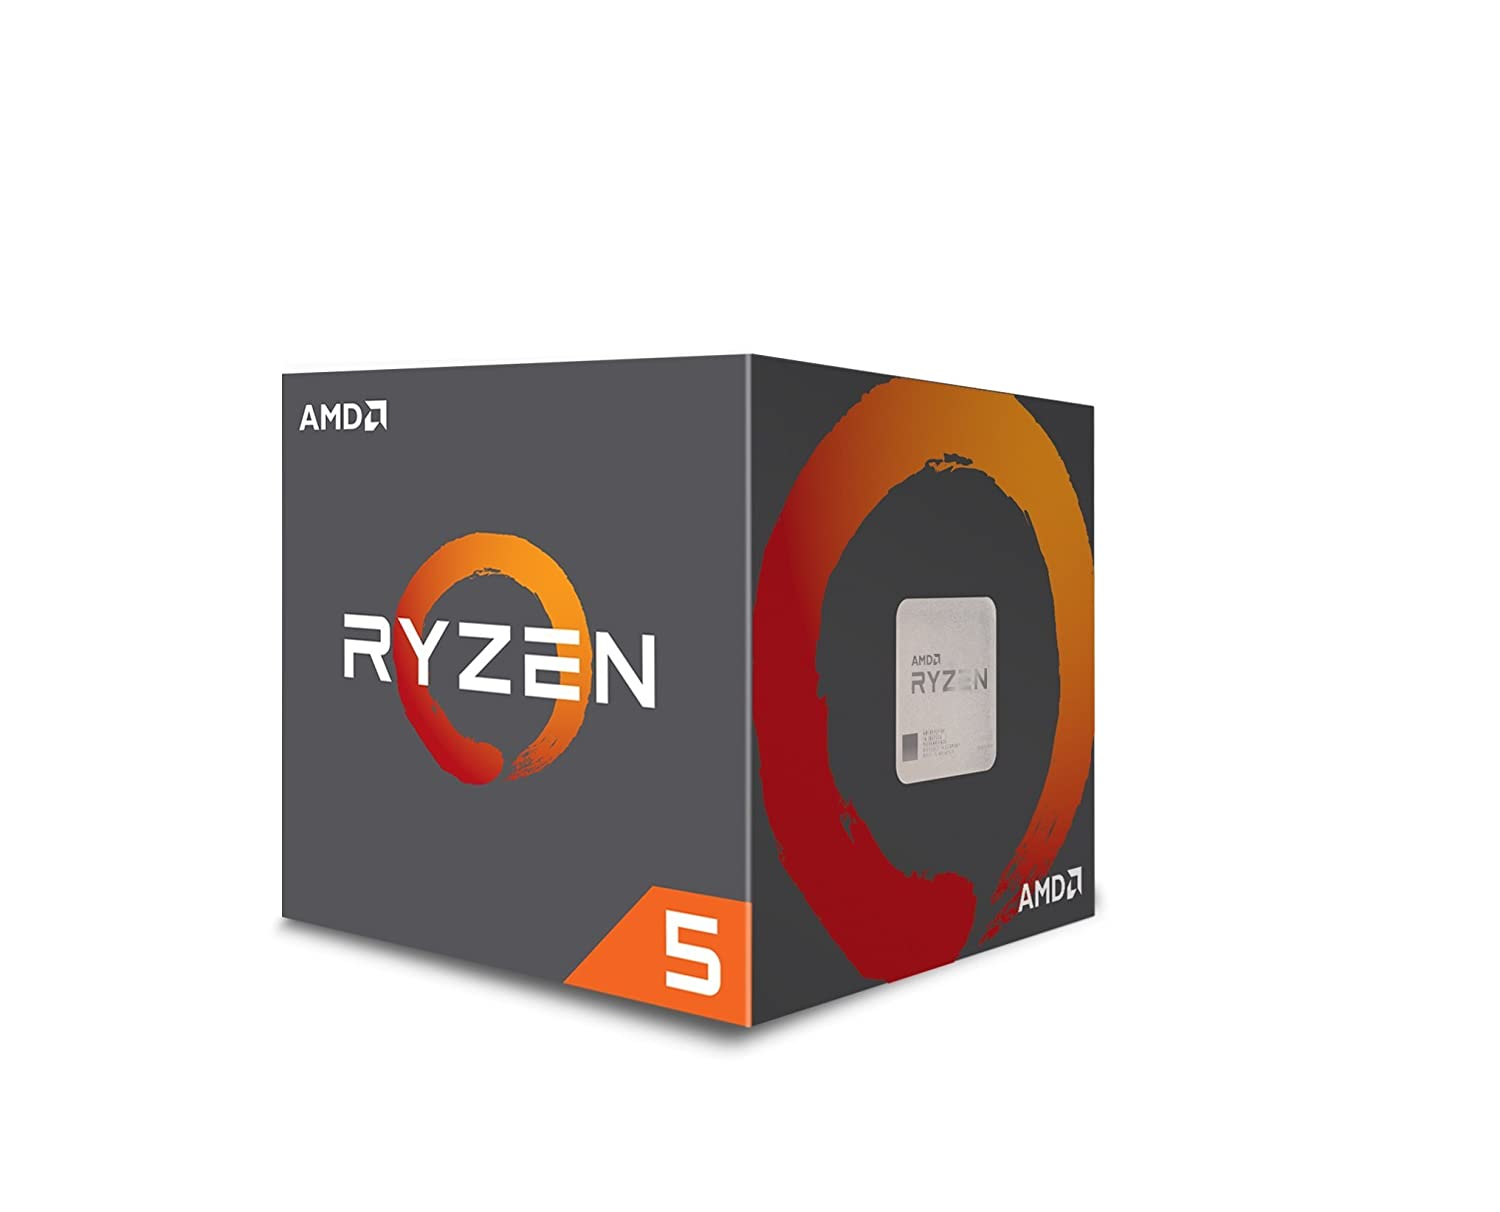 Ryzen 5 1400 Processor with Wraith Stealth Cooler (YD1400BBAE